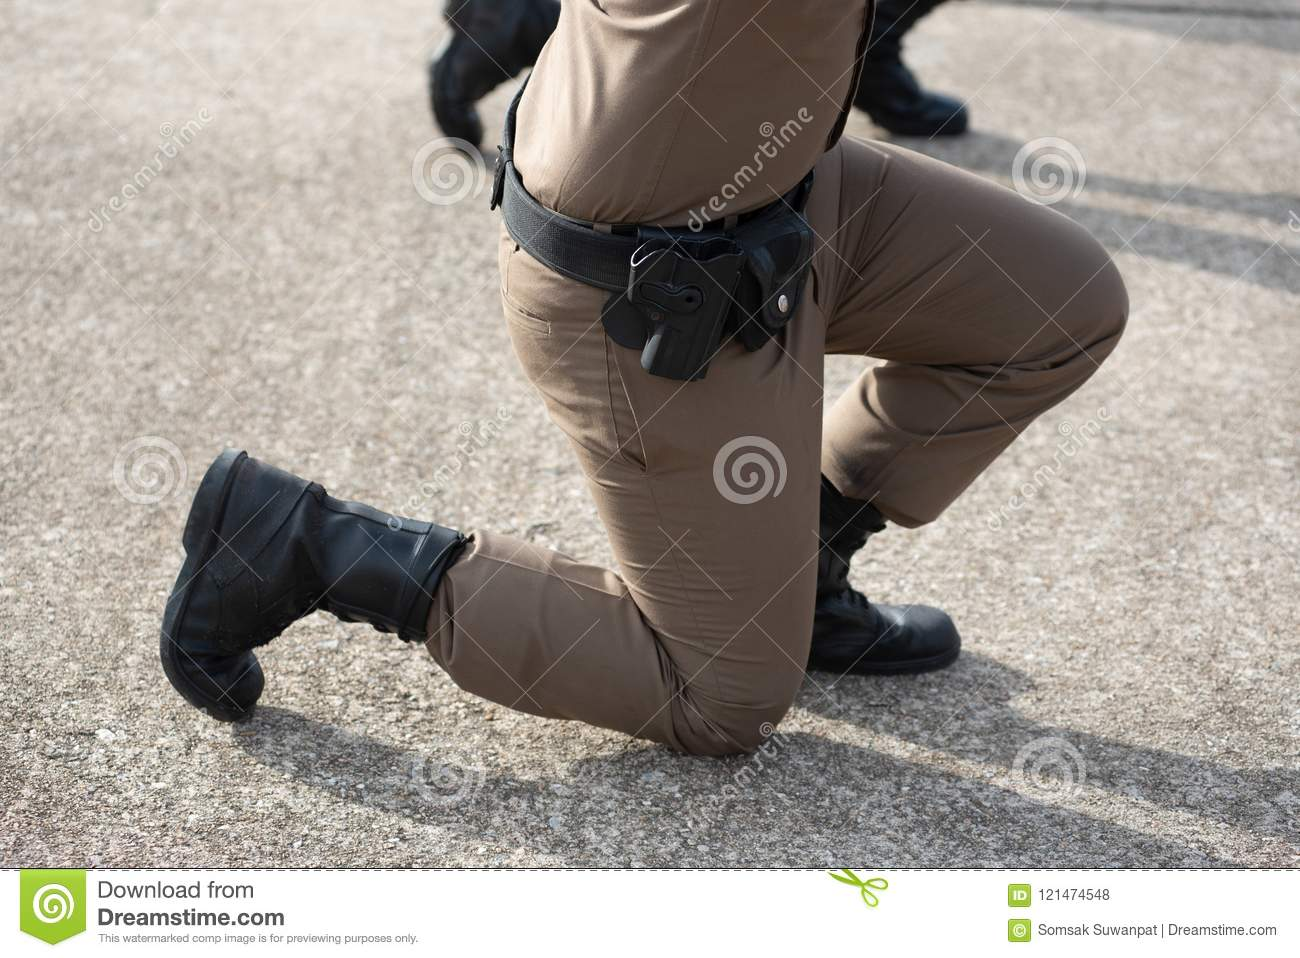 Police Tactical Firearms Training Stock Photo - Image of outdoor